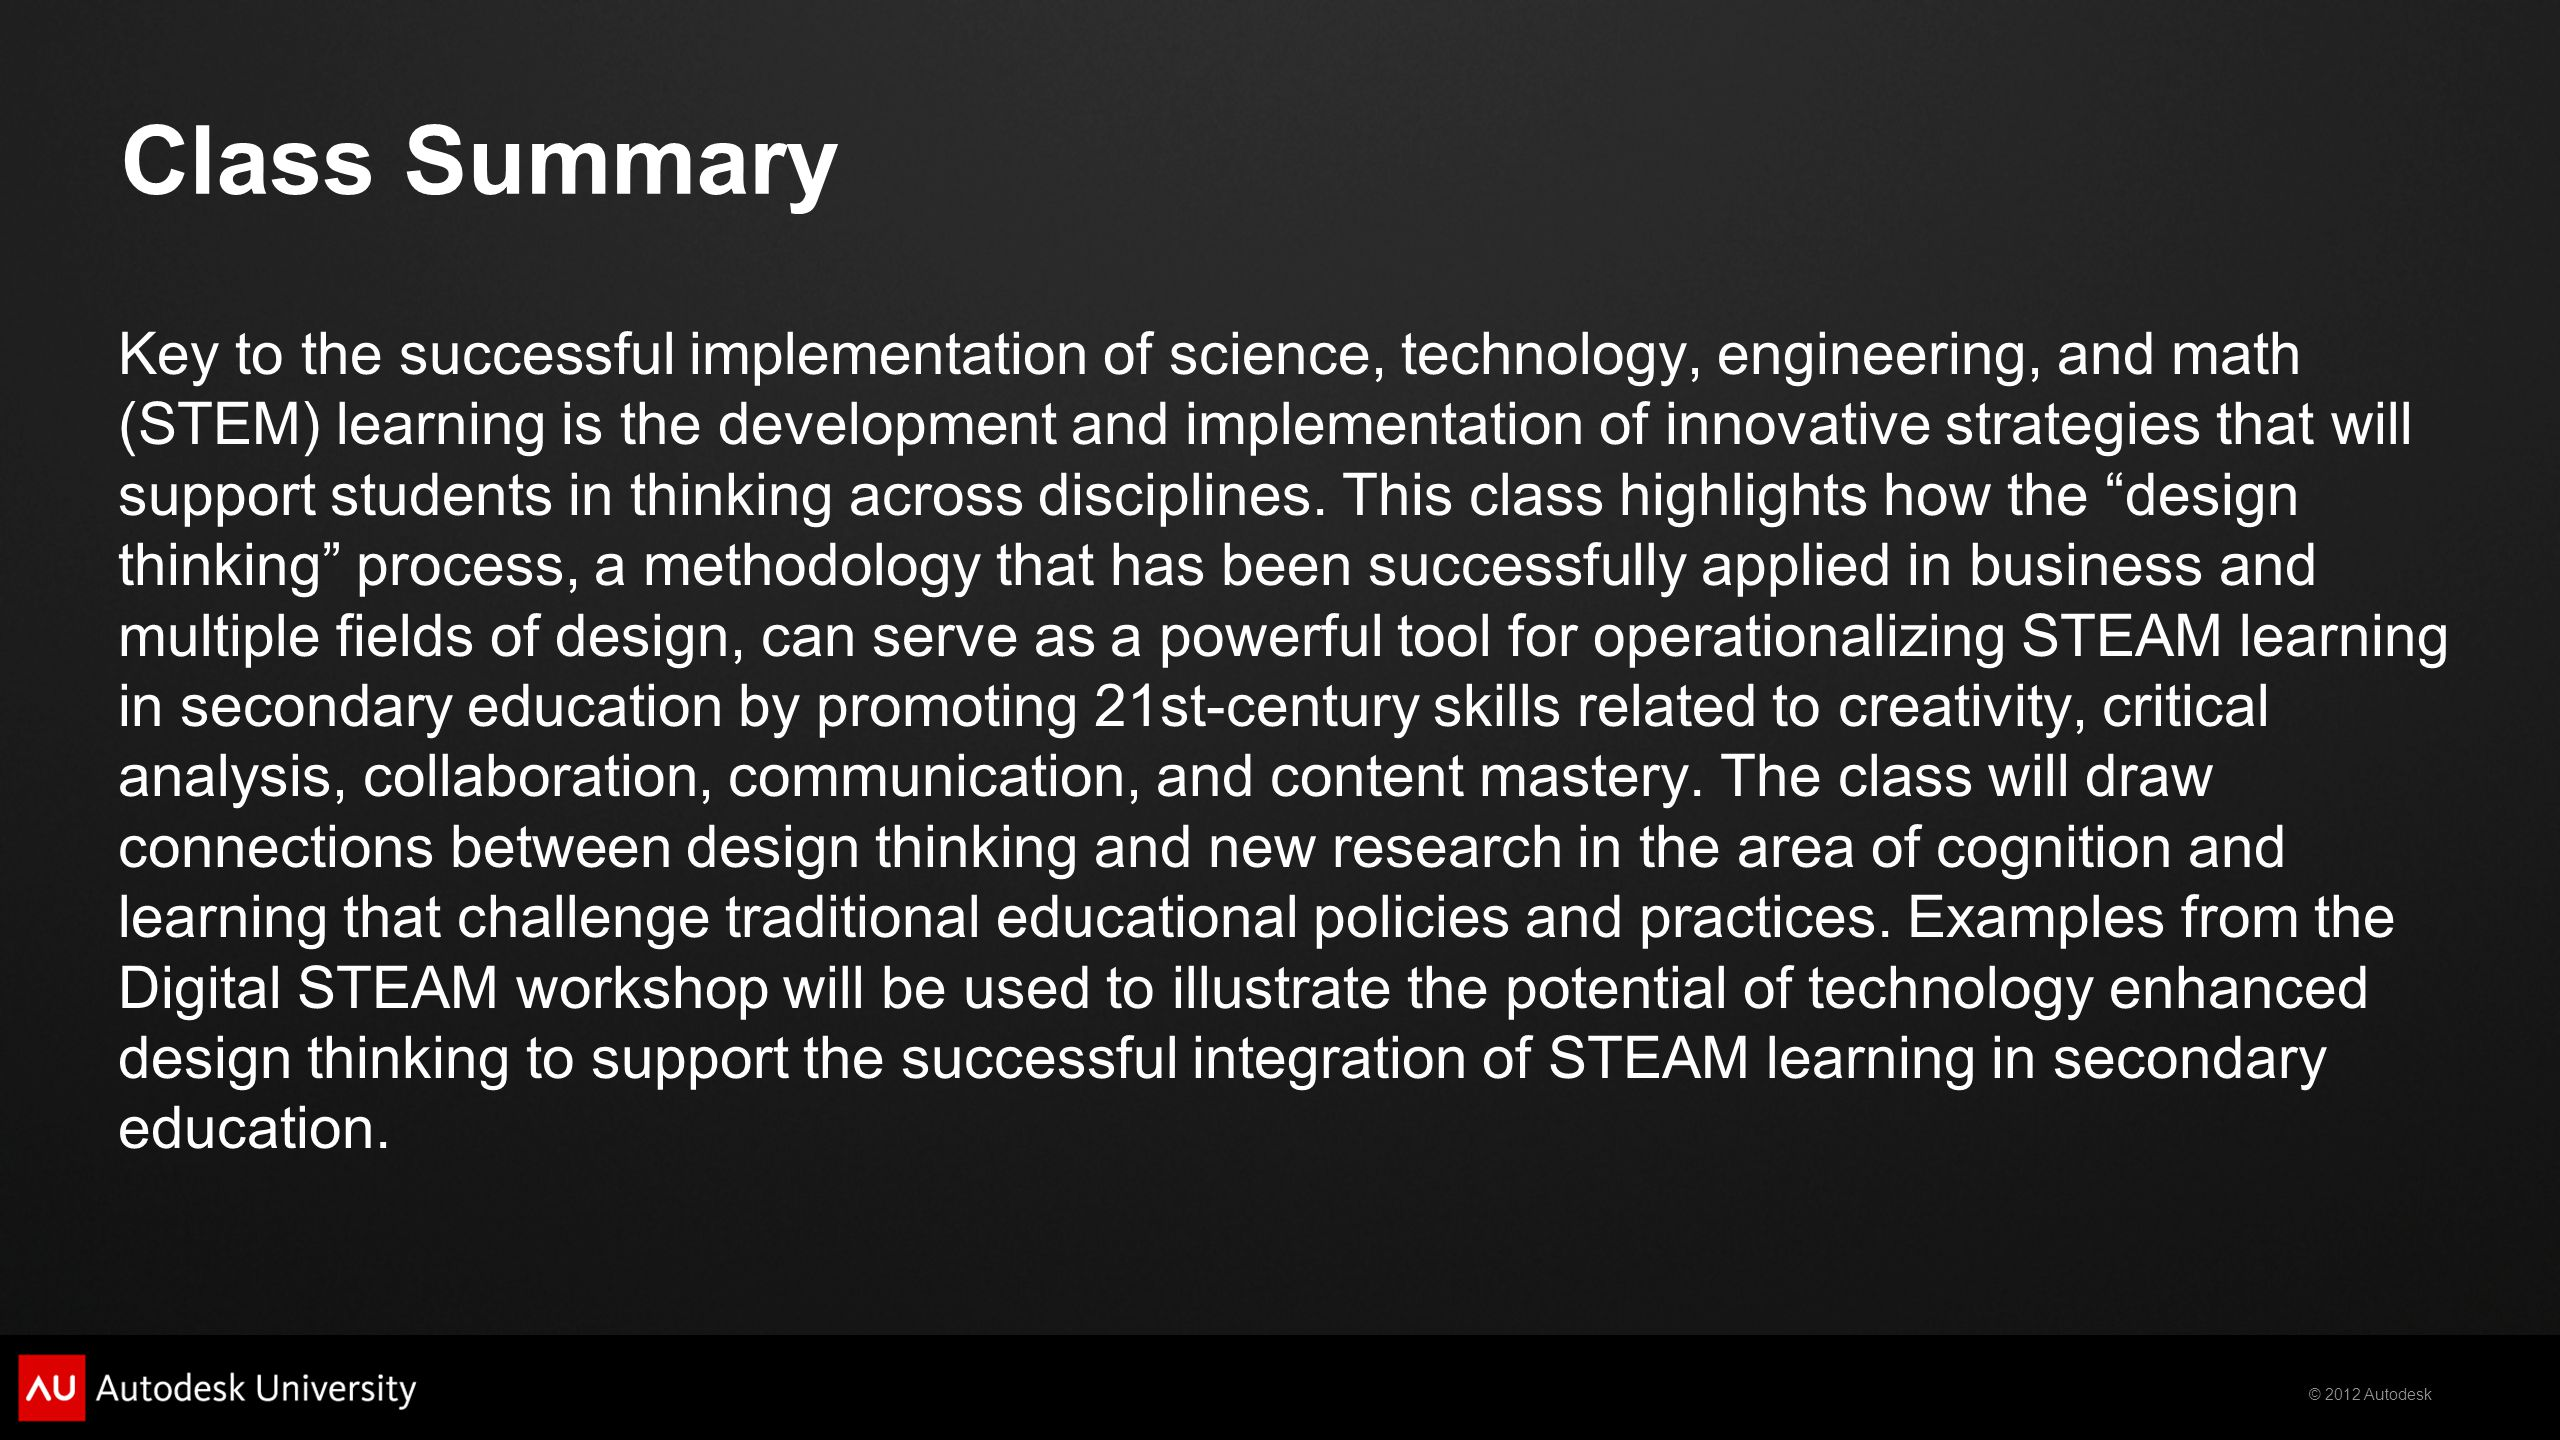 © 2012 Autodesk Learning Objectives At the end of this class, you will be able to:  List the principles of design thinking and explain the relationship of these cognitive practices to educational reform.